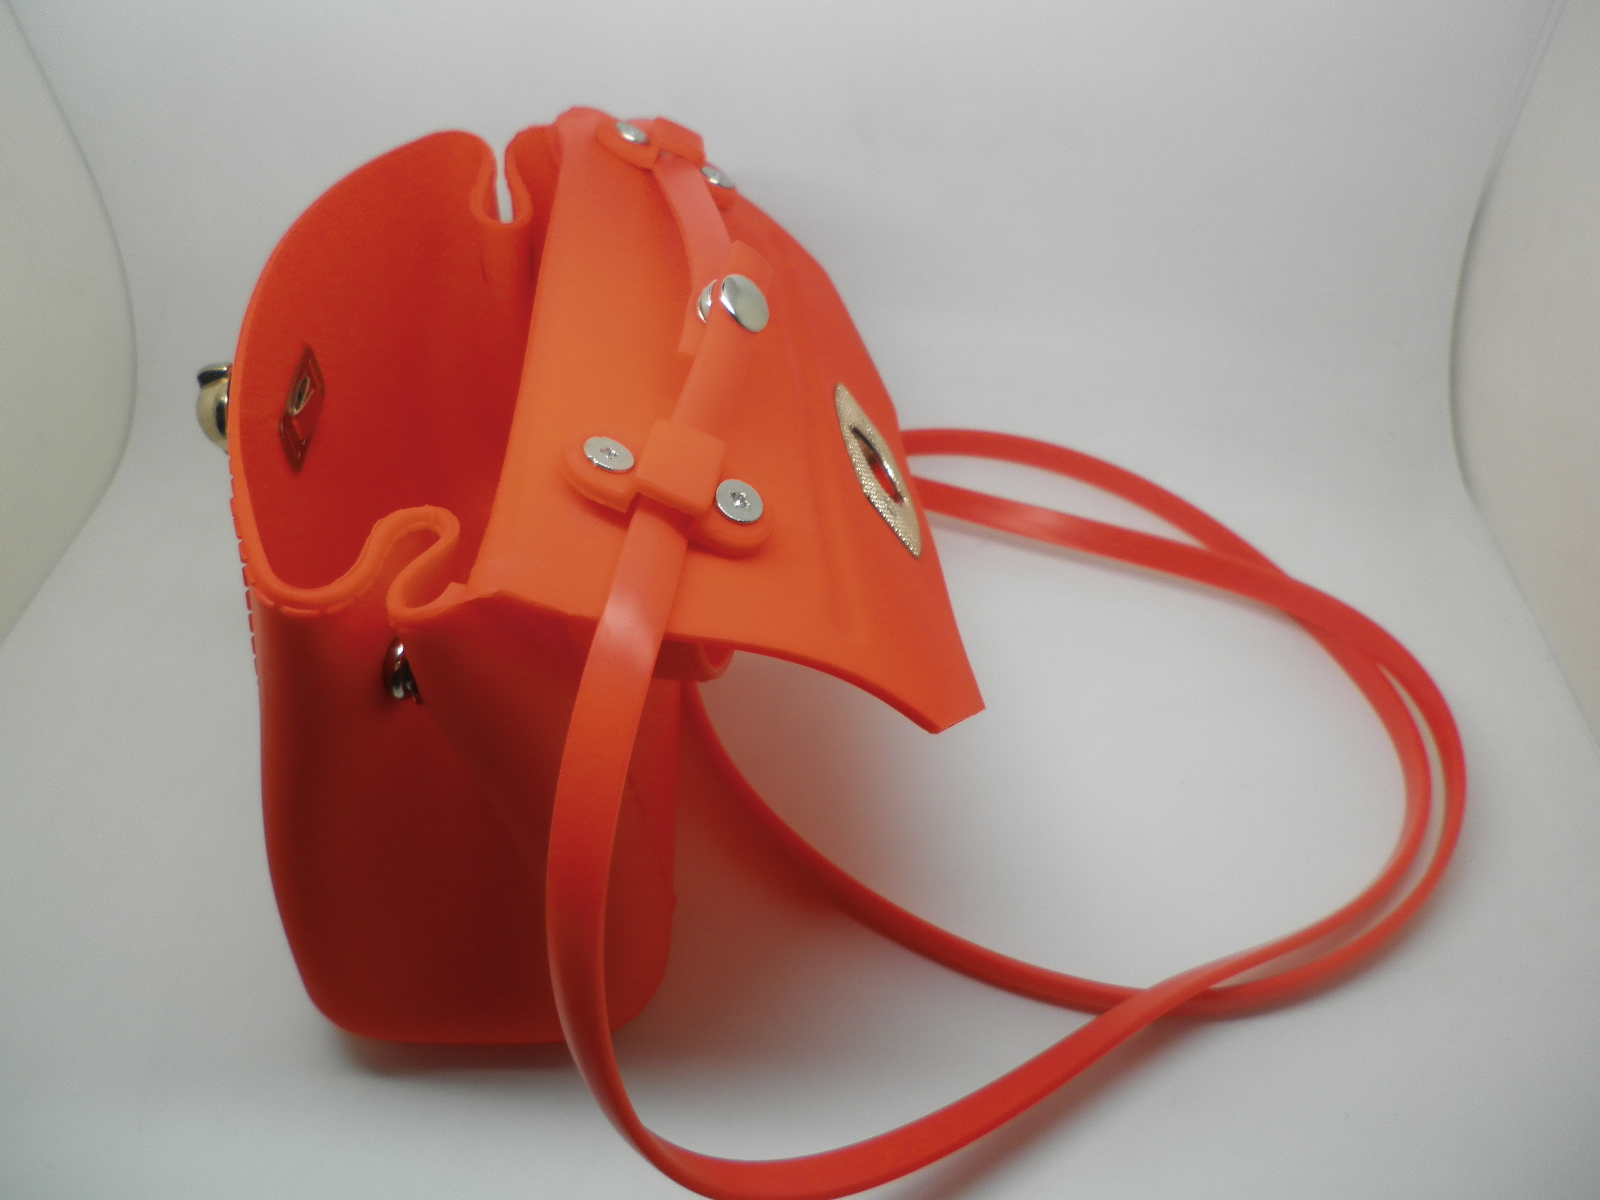 http://www.refinehksilicone.cn/data/images/product/20180417104424_128.JPG